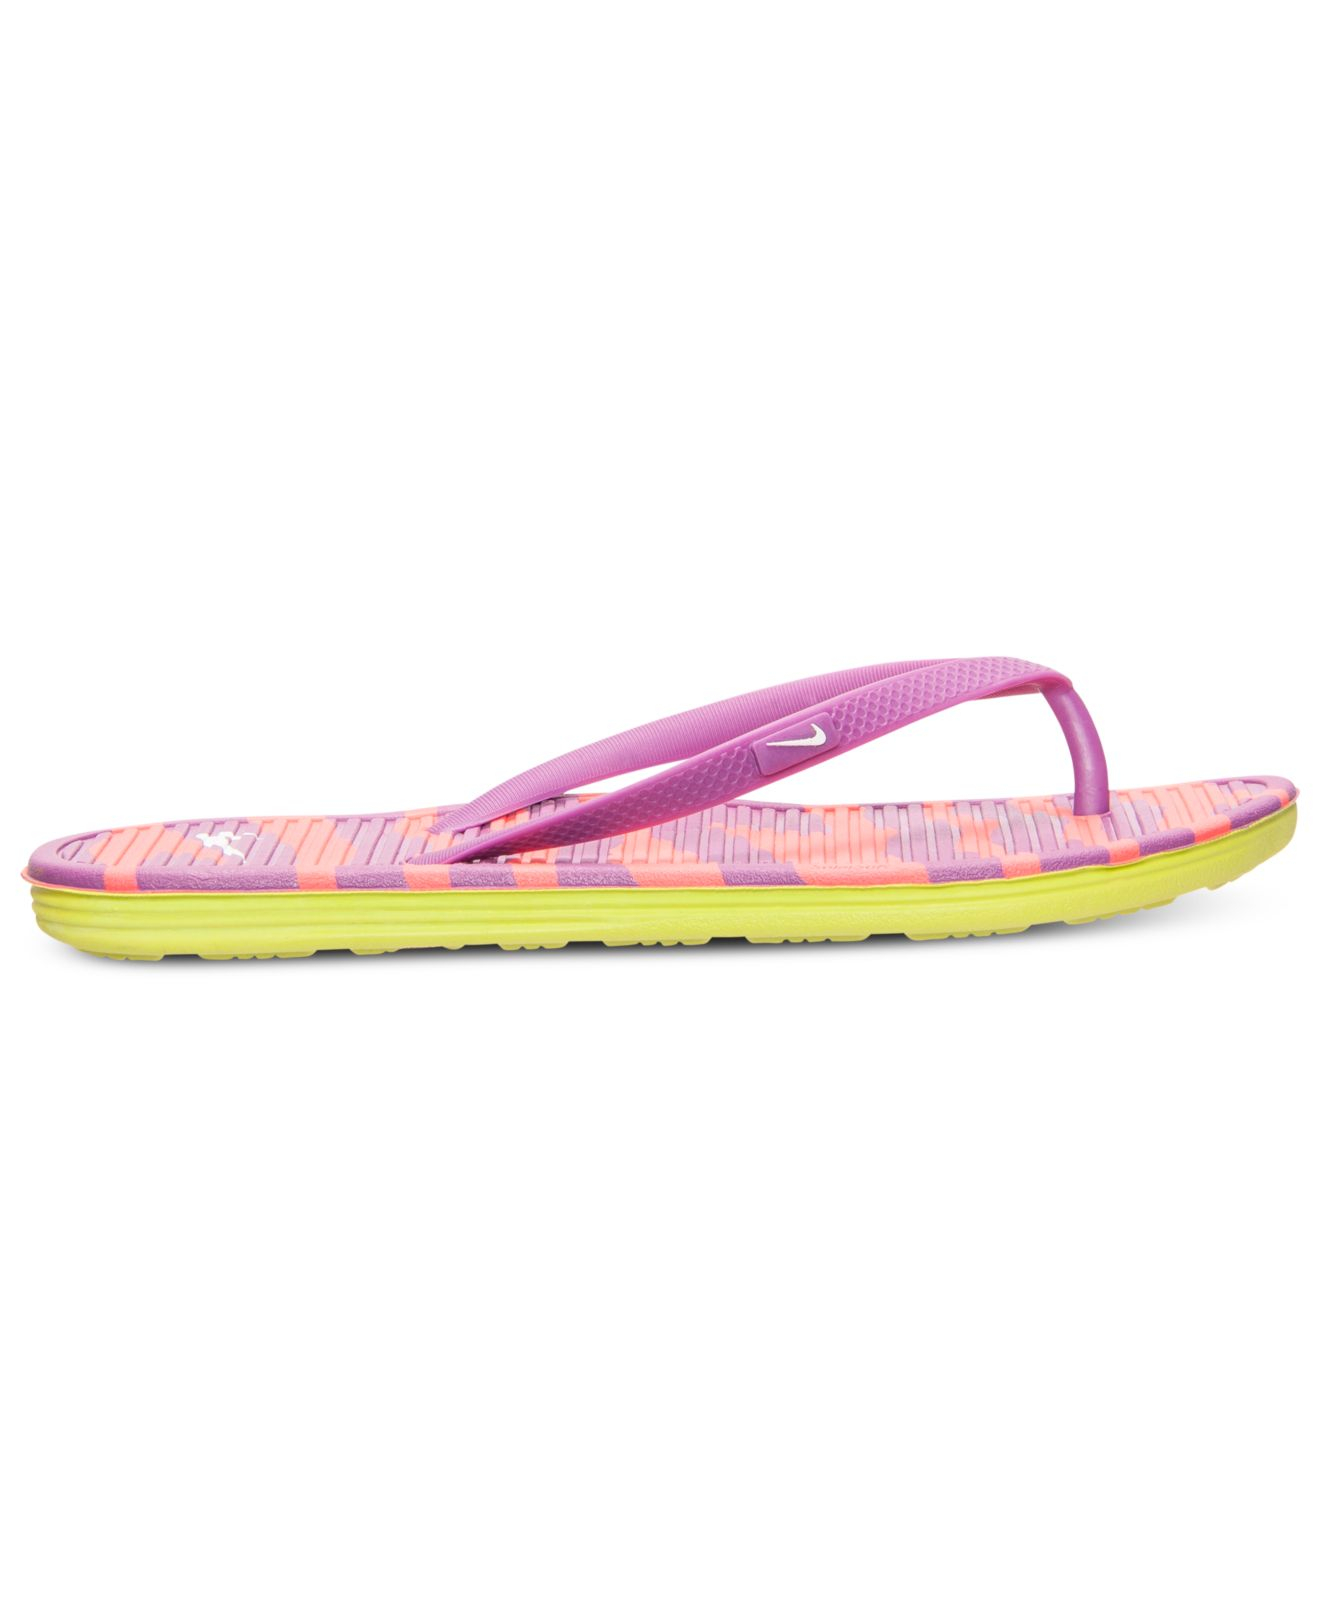 a28dc53c01a2d7 Lyst - Nike Women s Solarsoft Thong Ii Print Sandals From Finish ...